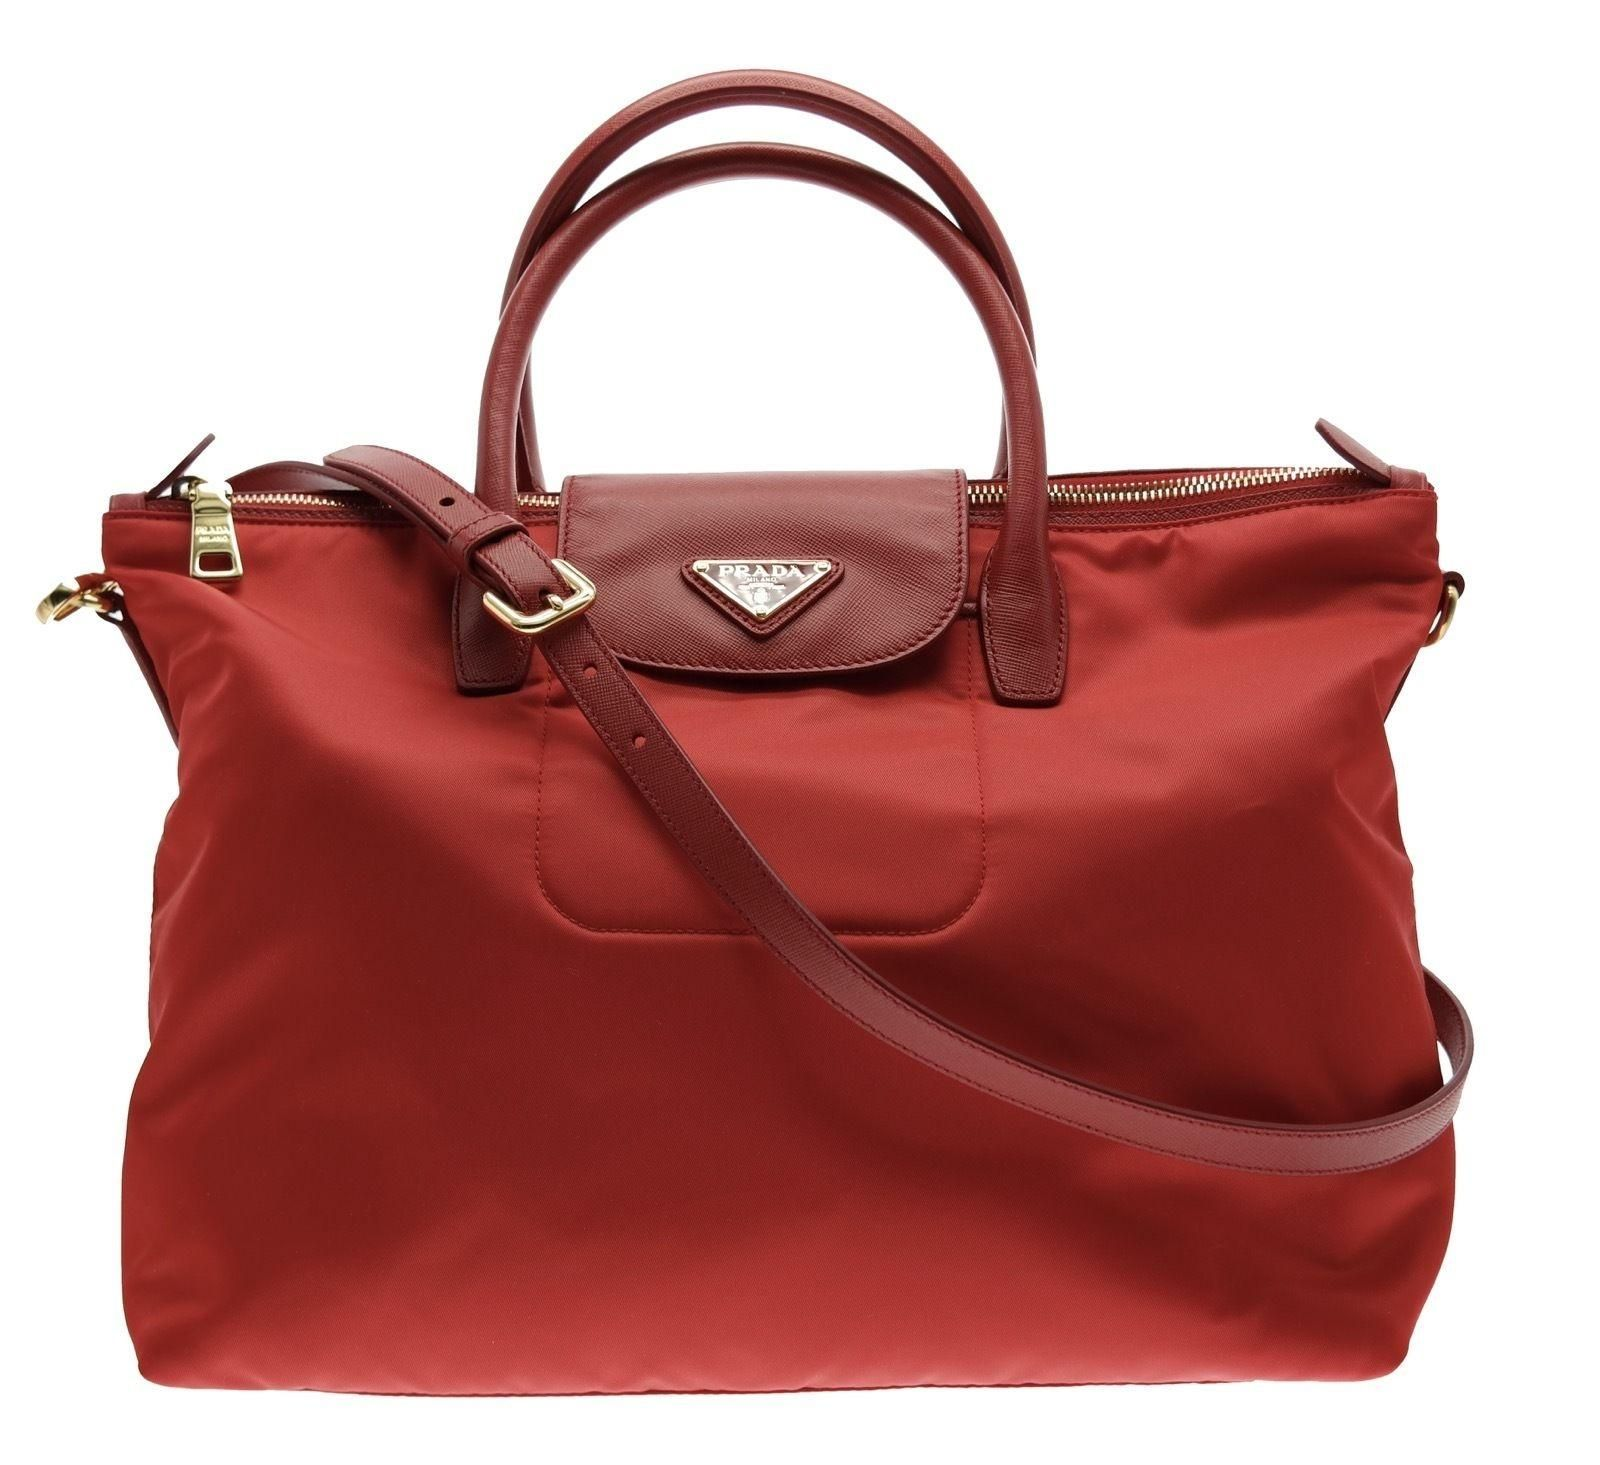 Prada Tessuto Saffiano Nylon Tote Shopping Red Bn2541 Shoulder Bag. Get one  of the hottest styles of the season! The Prada Tessuto Saffiano Nylon Tote  ... 47d83b30255d6